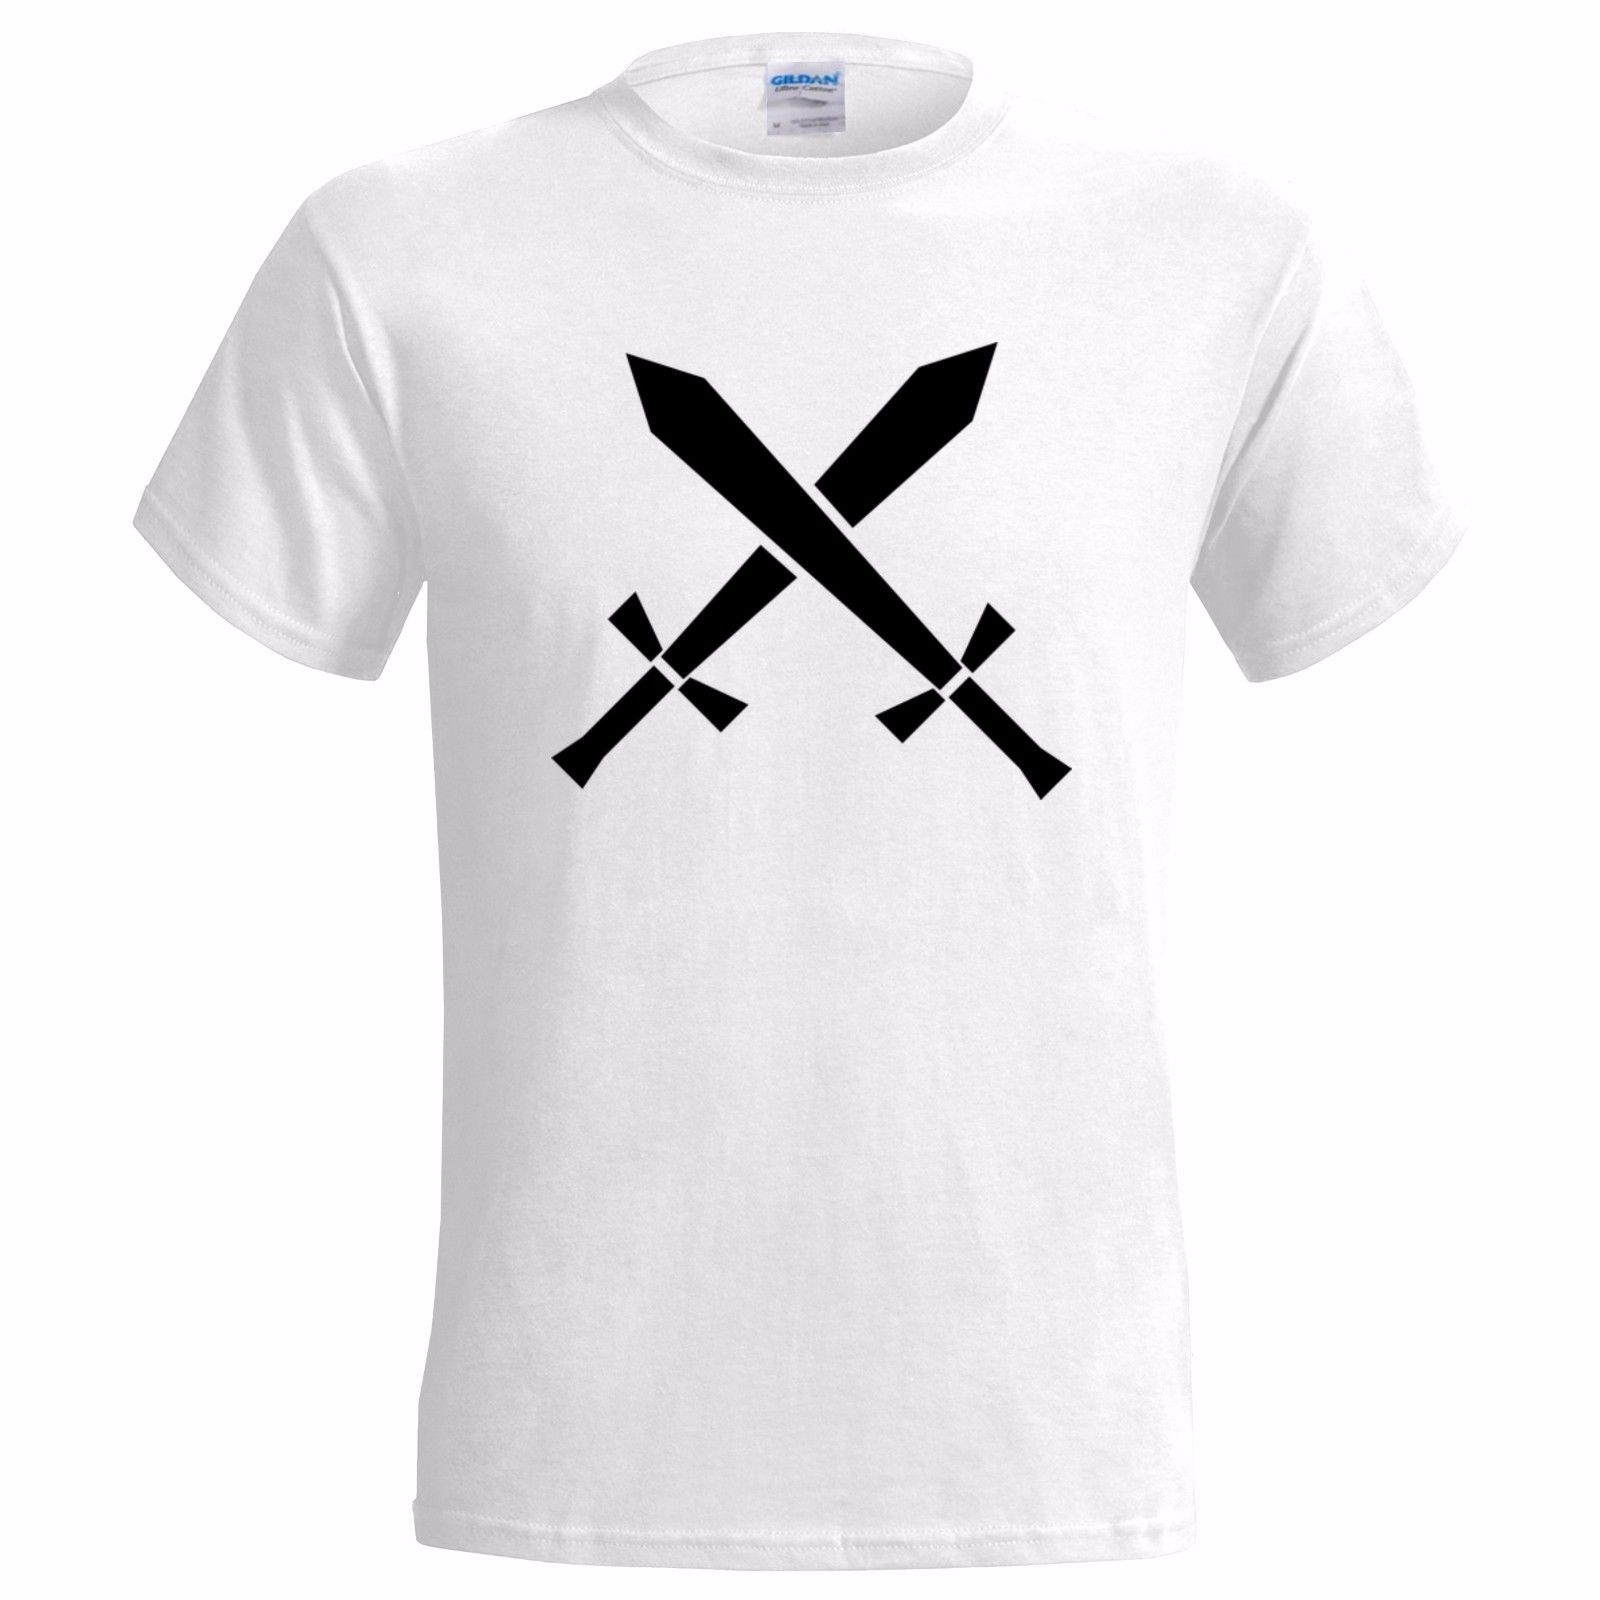 Buy Shirt The Clash And Get Free Shipping On T Of Clans